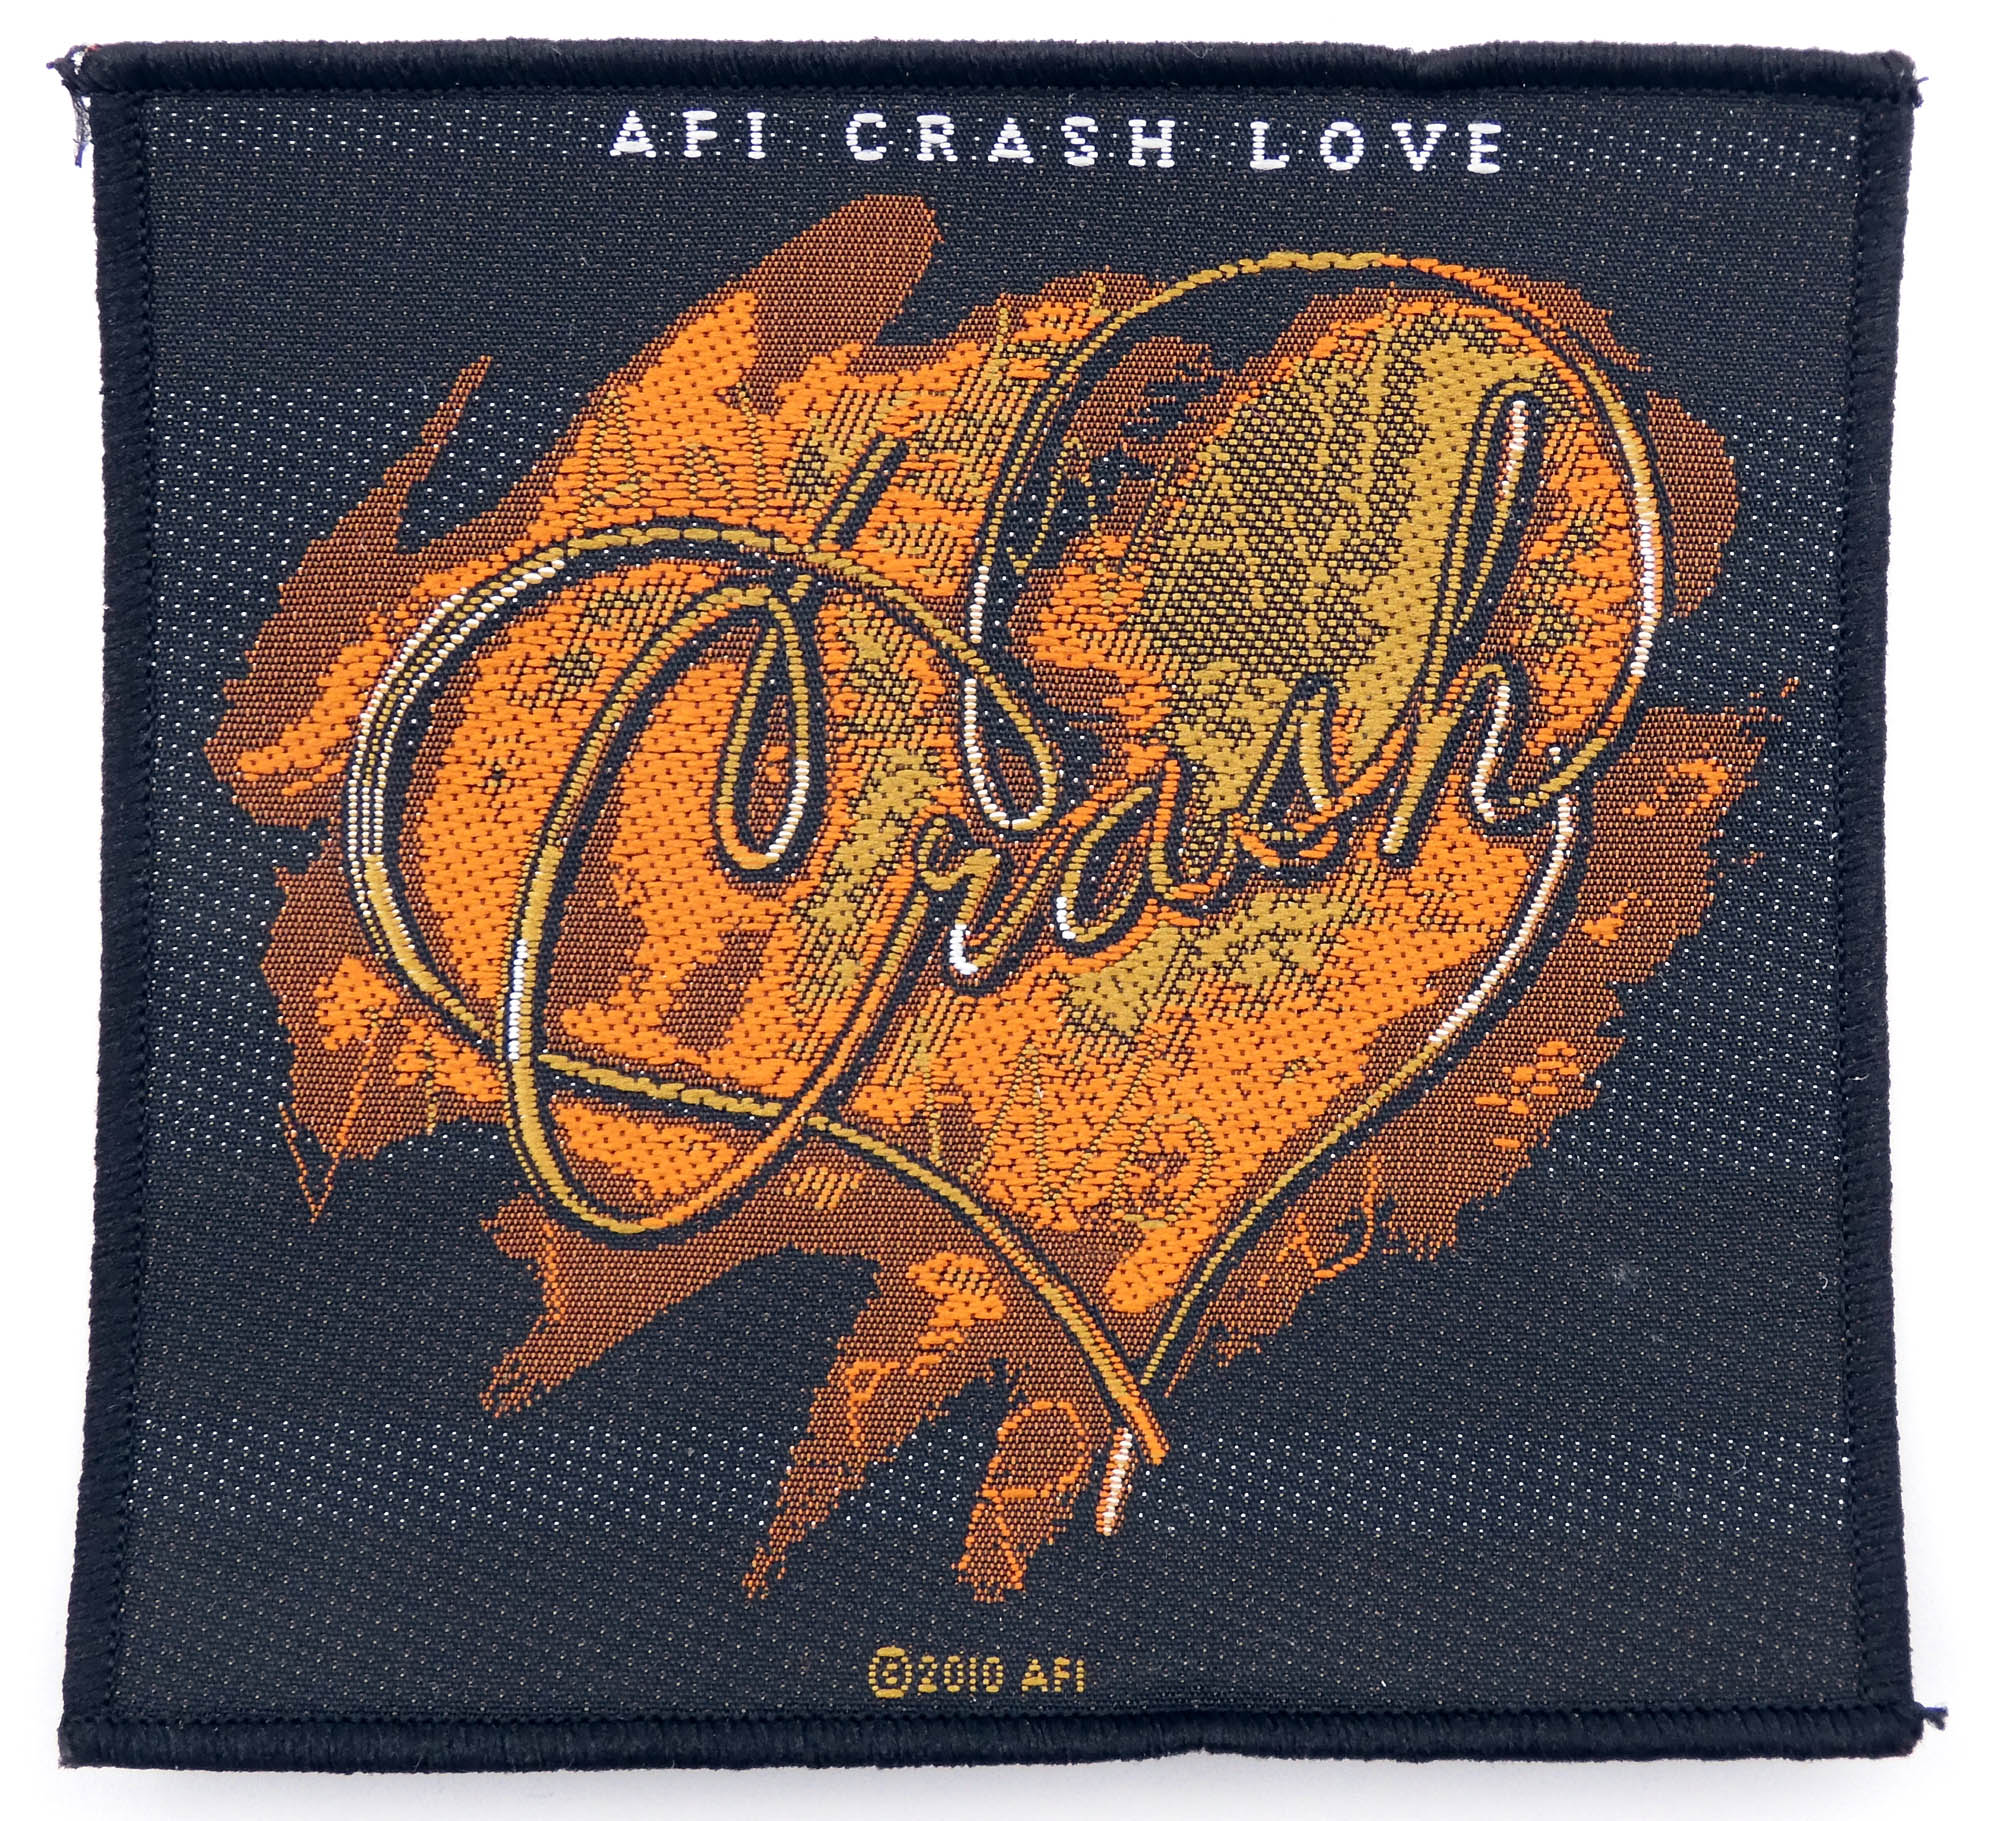 https://www.rockbymail.com/afi---crash-love-heart-woven-patch-24164-p.asp